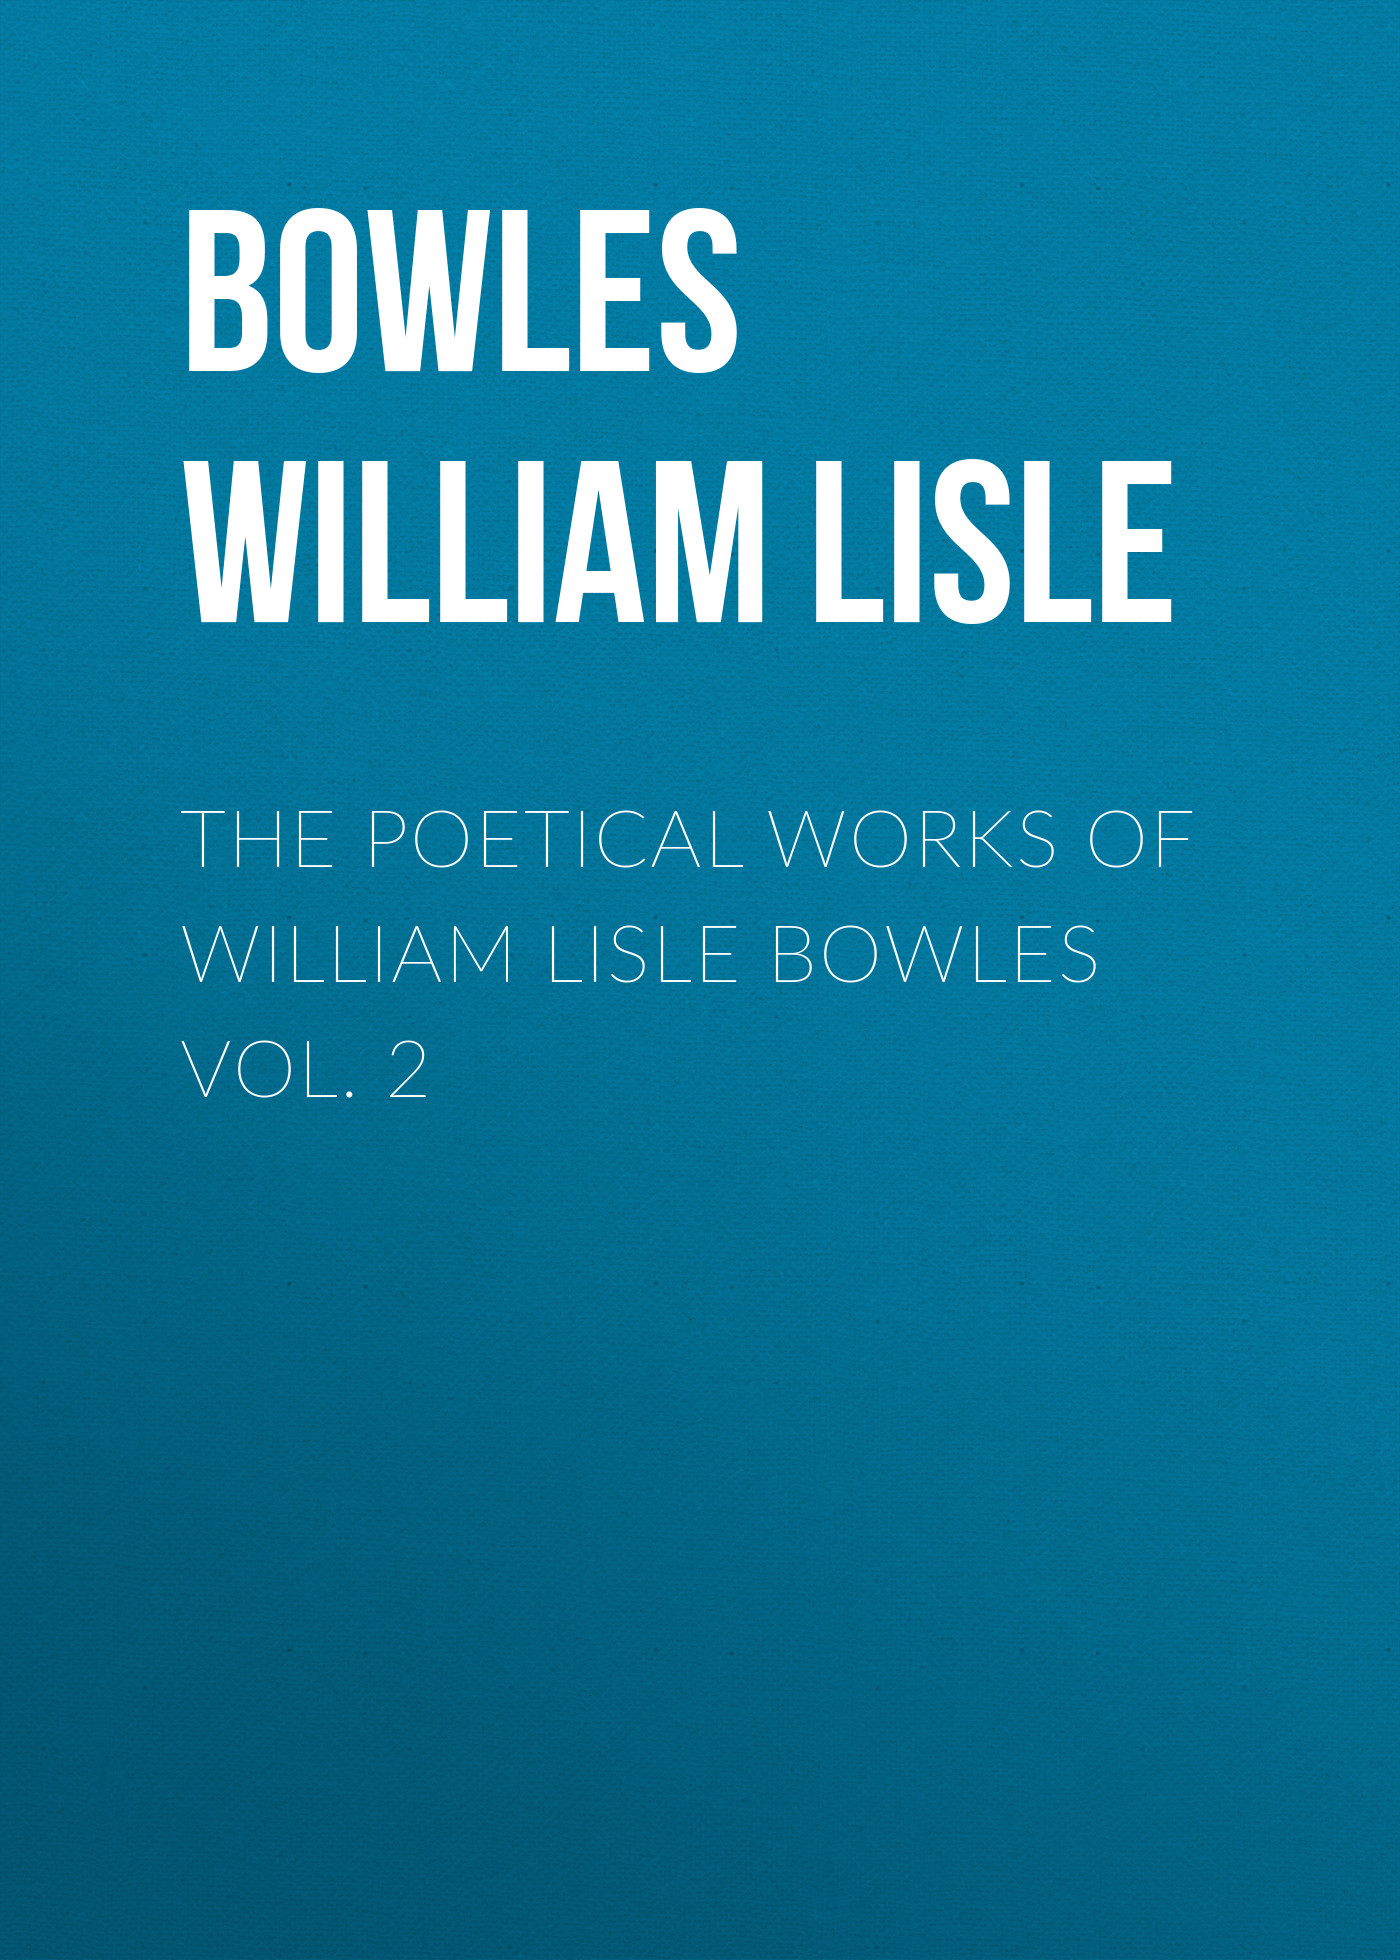 Bowles William Lisle The Poetical Works of William Lisle Bowles Vol. 2 william shenstone the poetical works vol 1